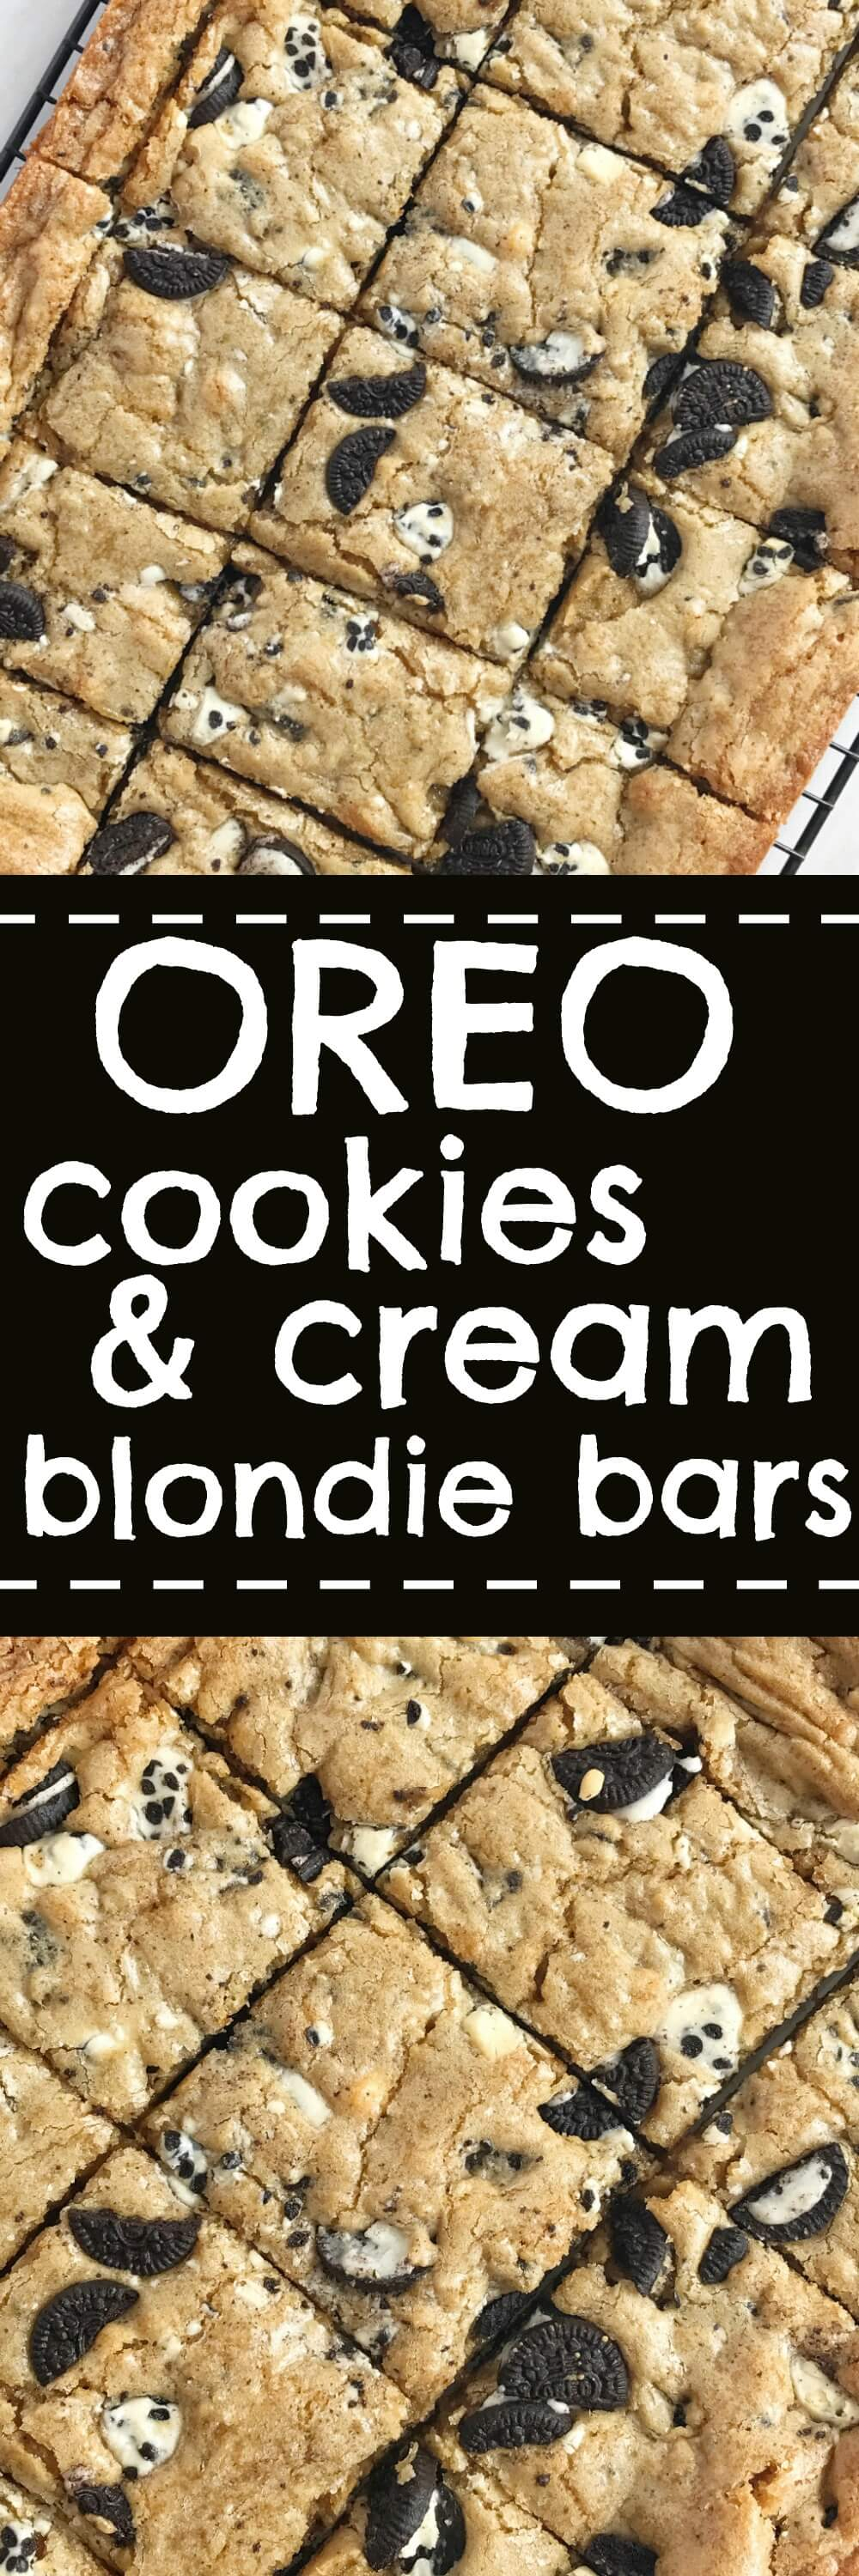 Oreo Cookies Amp Cream Blondie Bars Together As Family